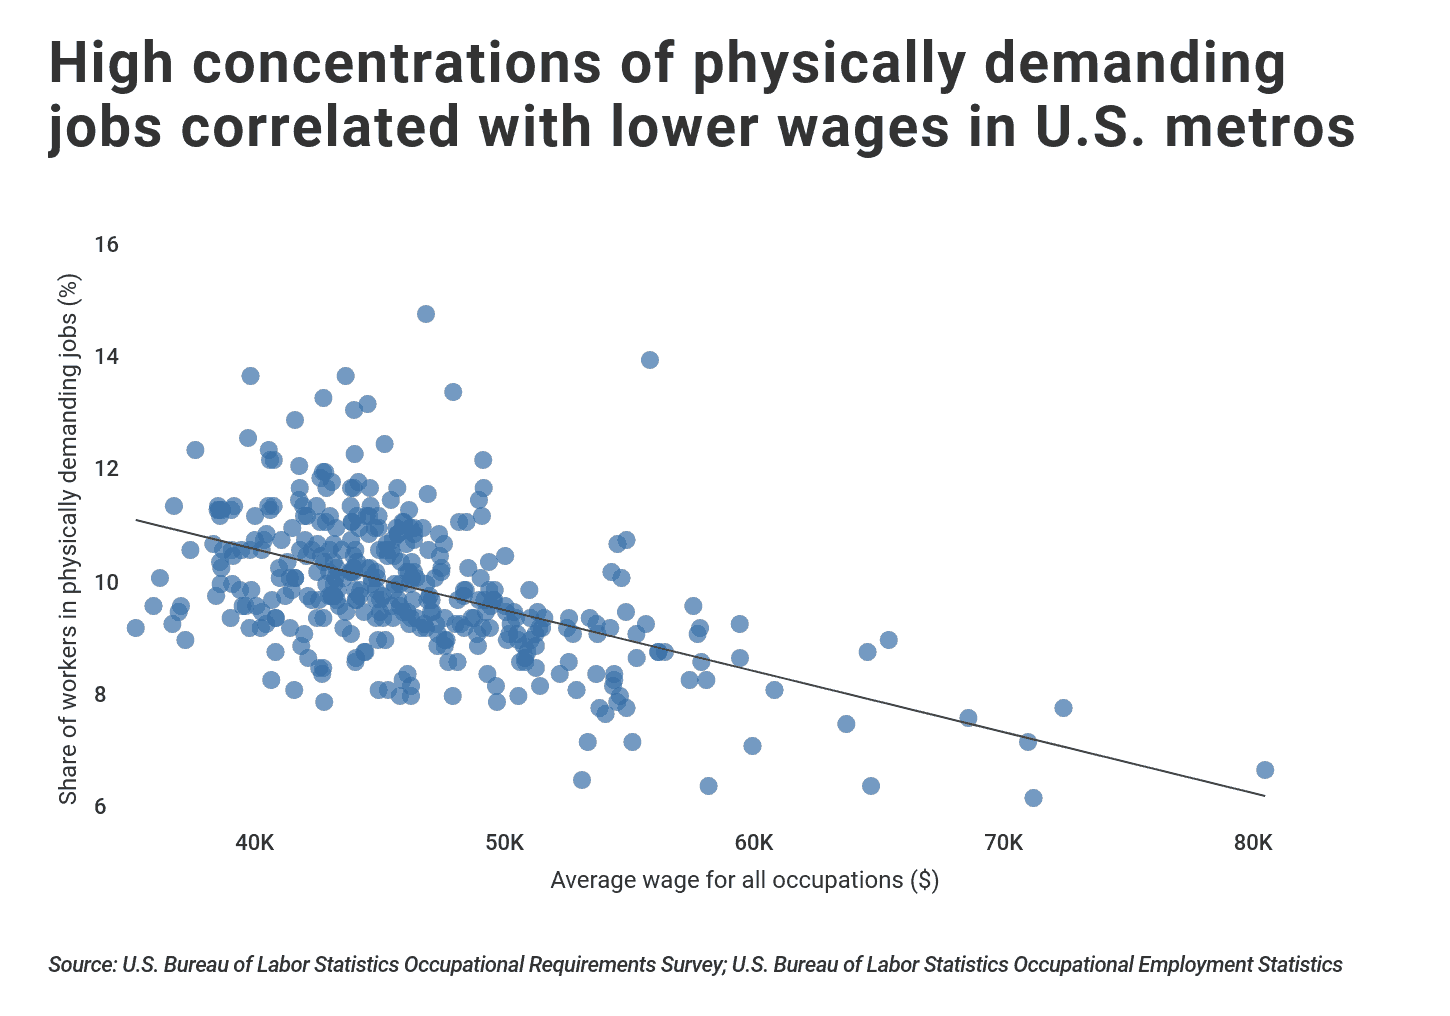 Share of workers in physically demanding jobs vs. mean wage